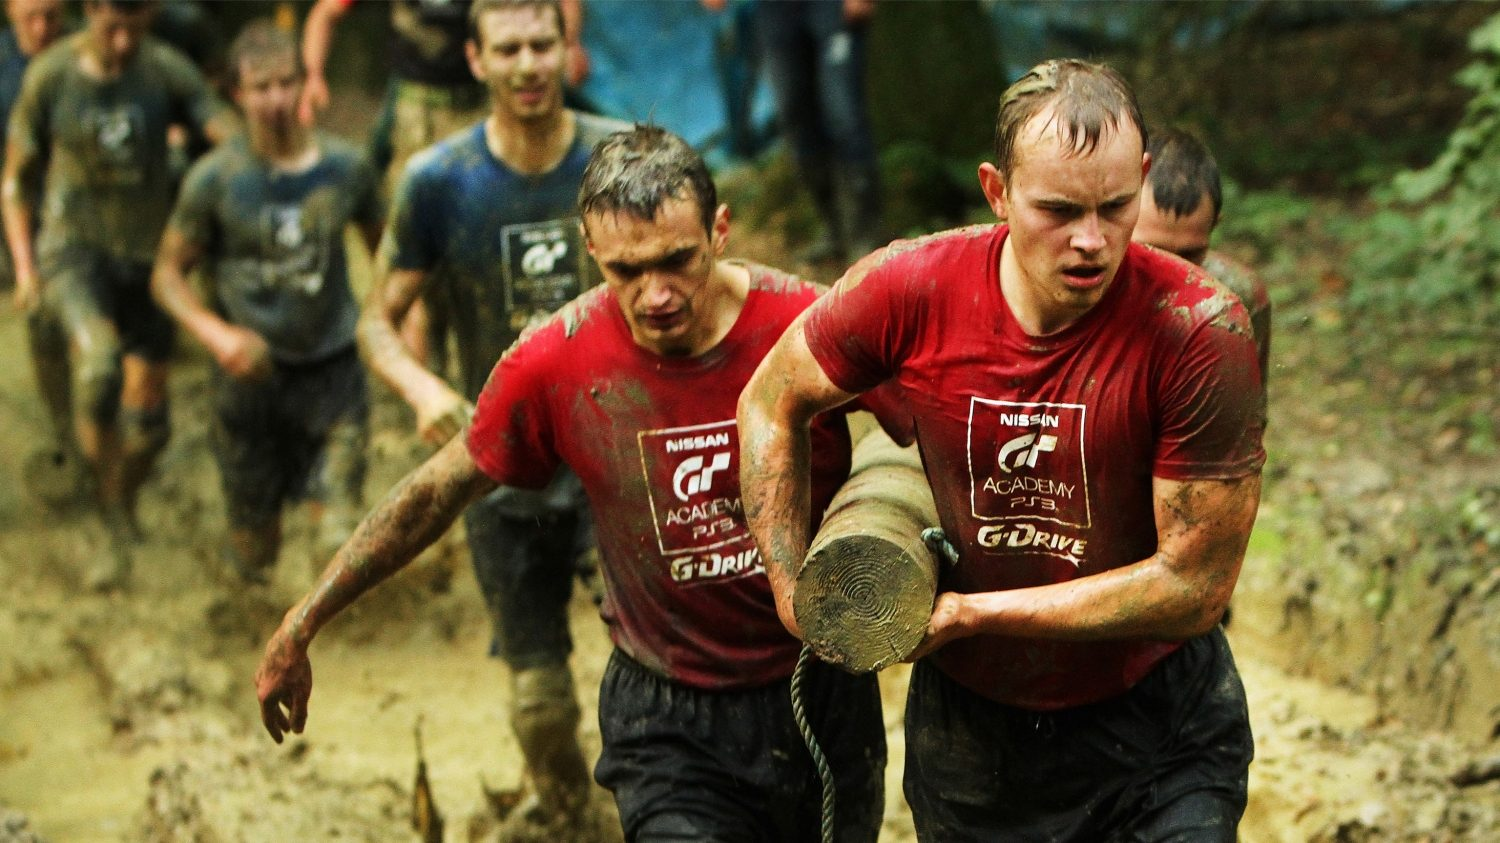 GT Academy gallery. Training camp - mud run.